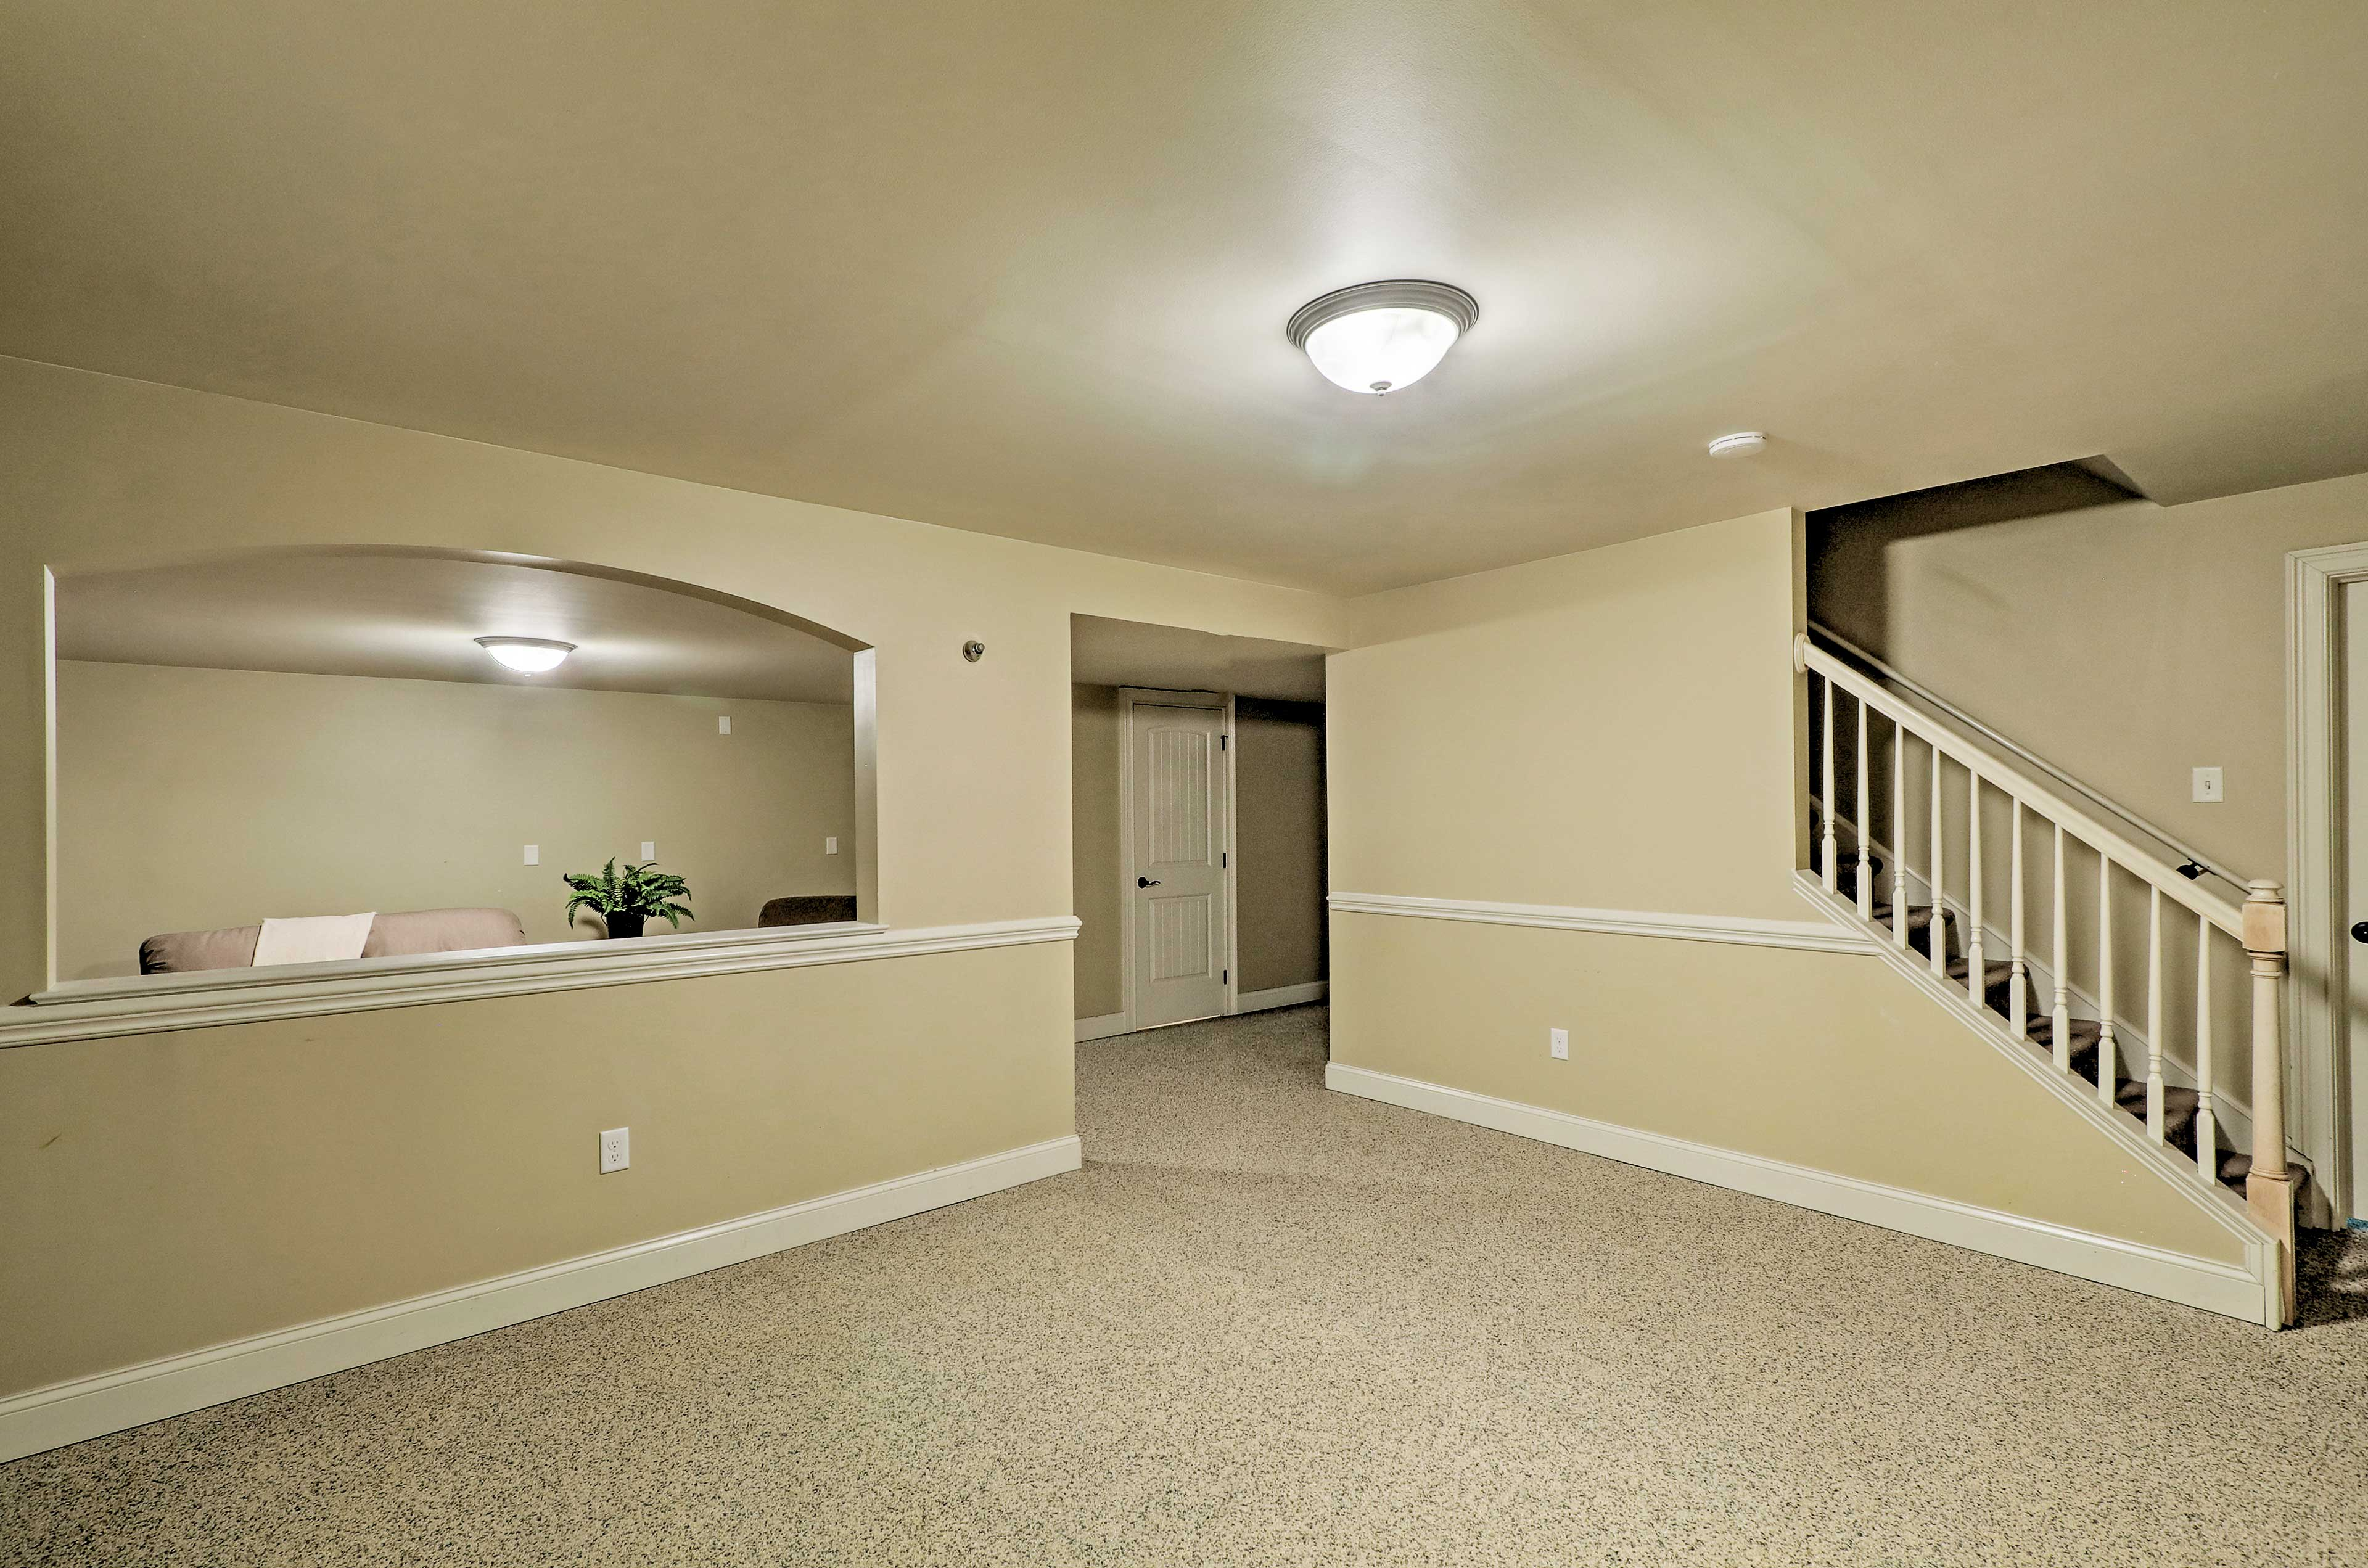 Downstairs, you'll find another living area and bedroom.